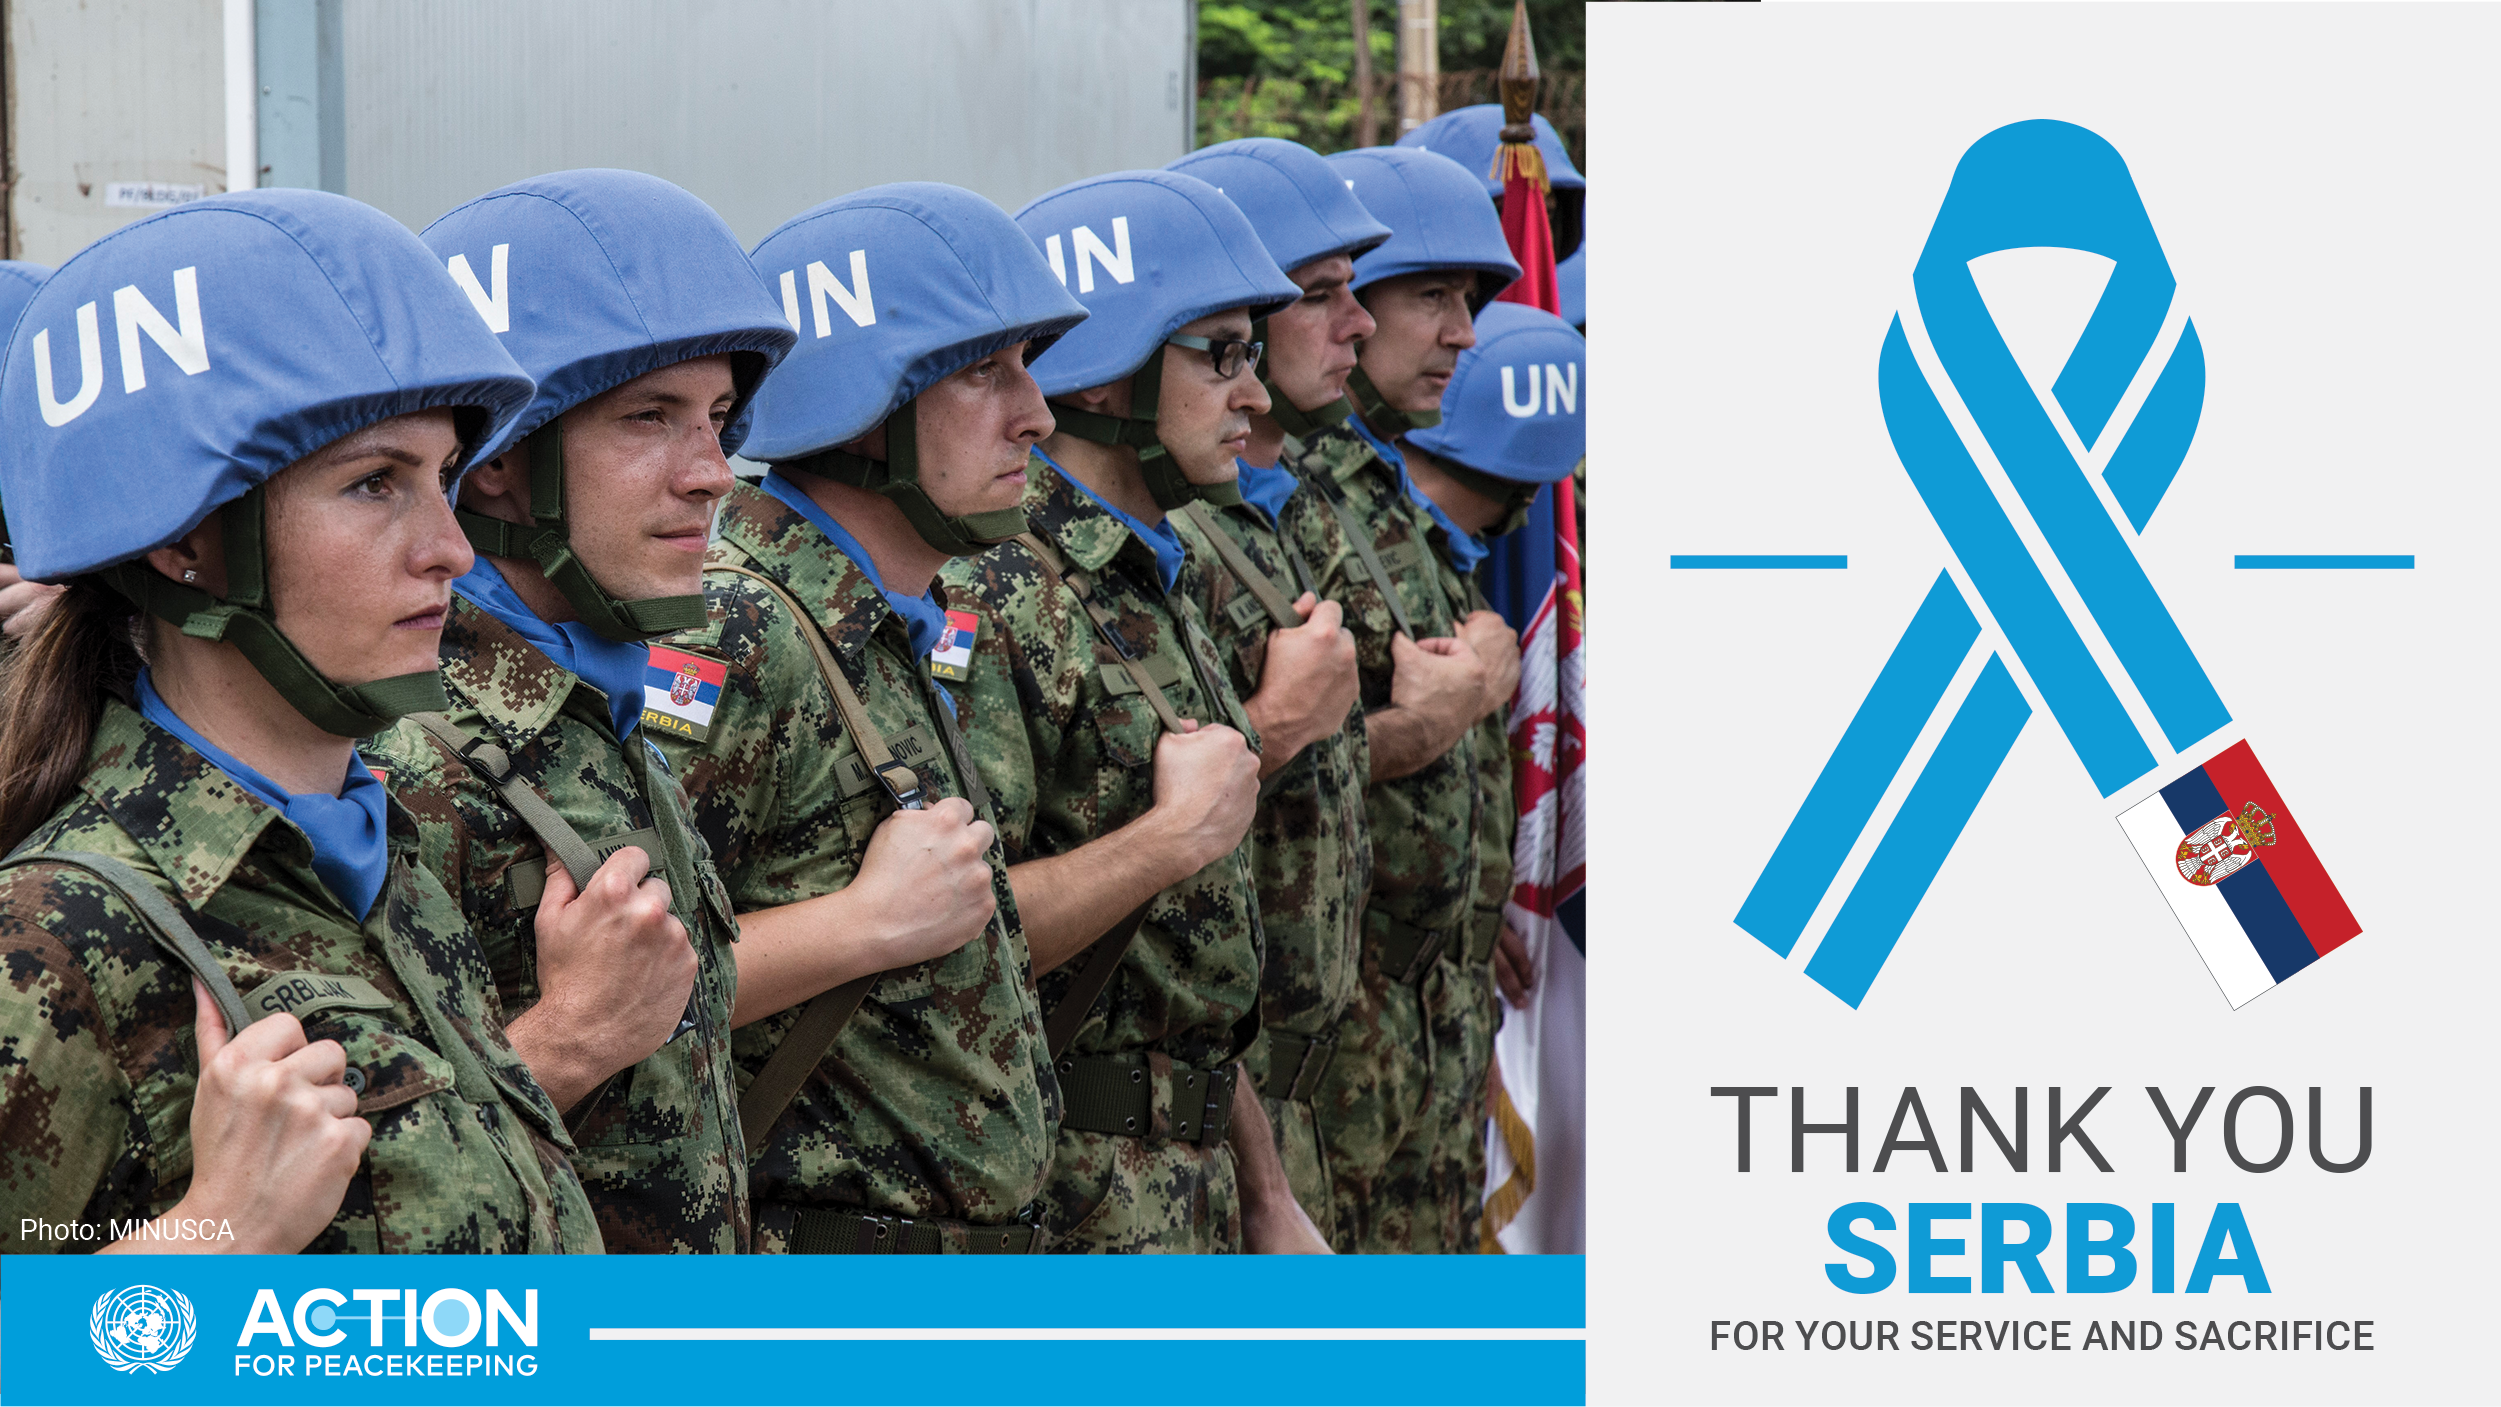 United Nations thanks Serbia for its contribution to peacekeeping